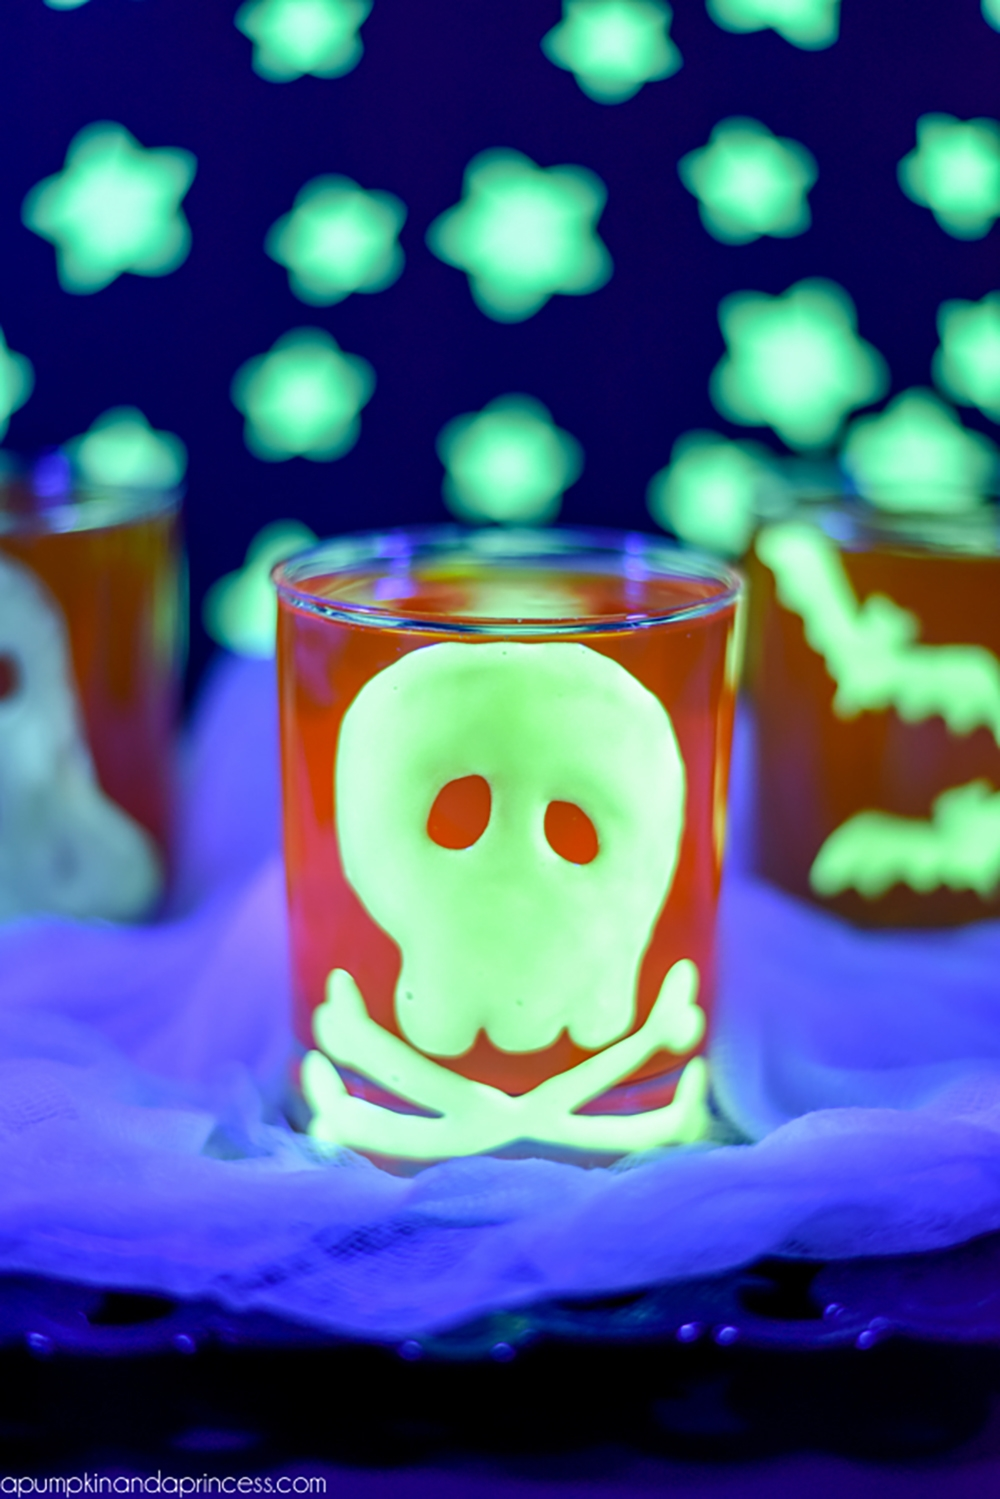 The Ultimate Glow-in-the-Dark DIY Roundup: 20+ DIY Project Ideas